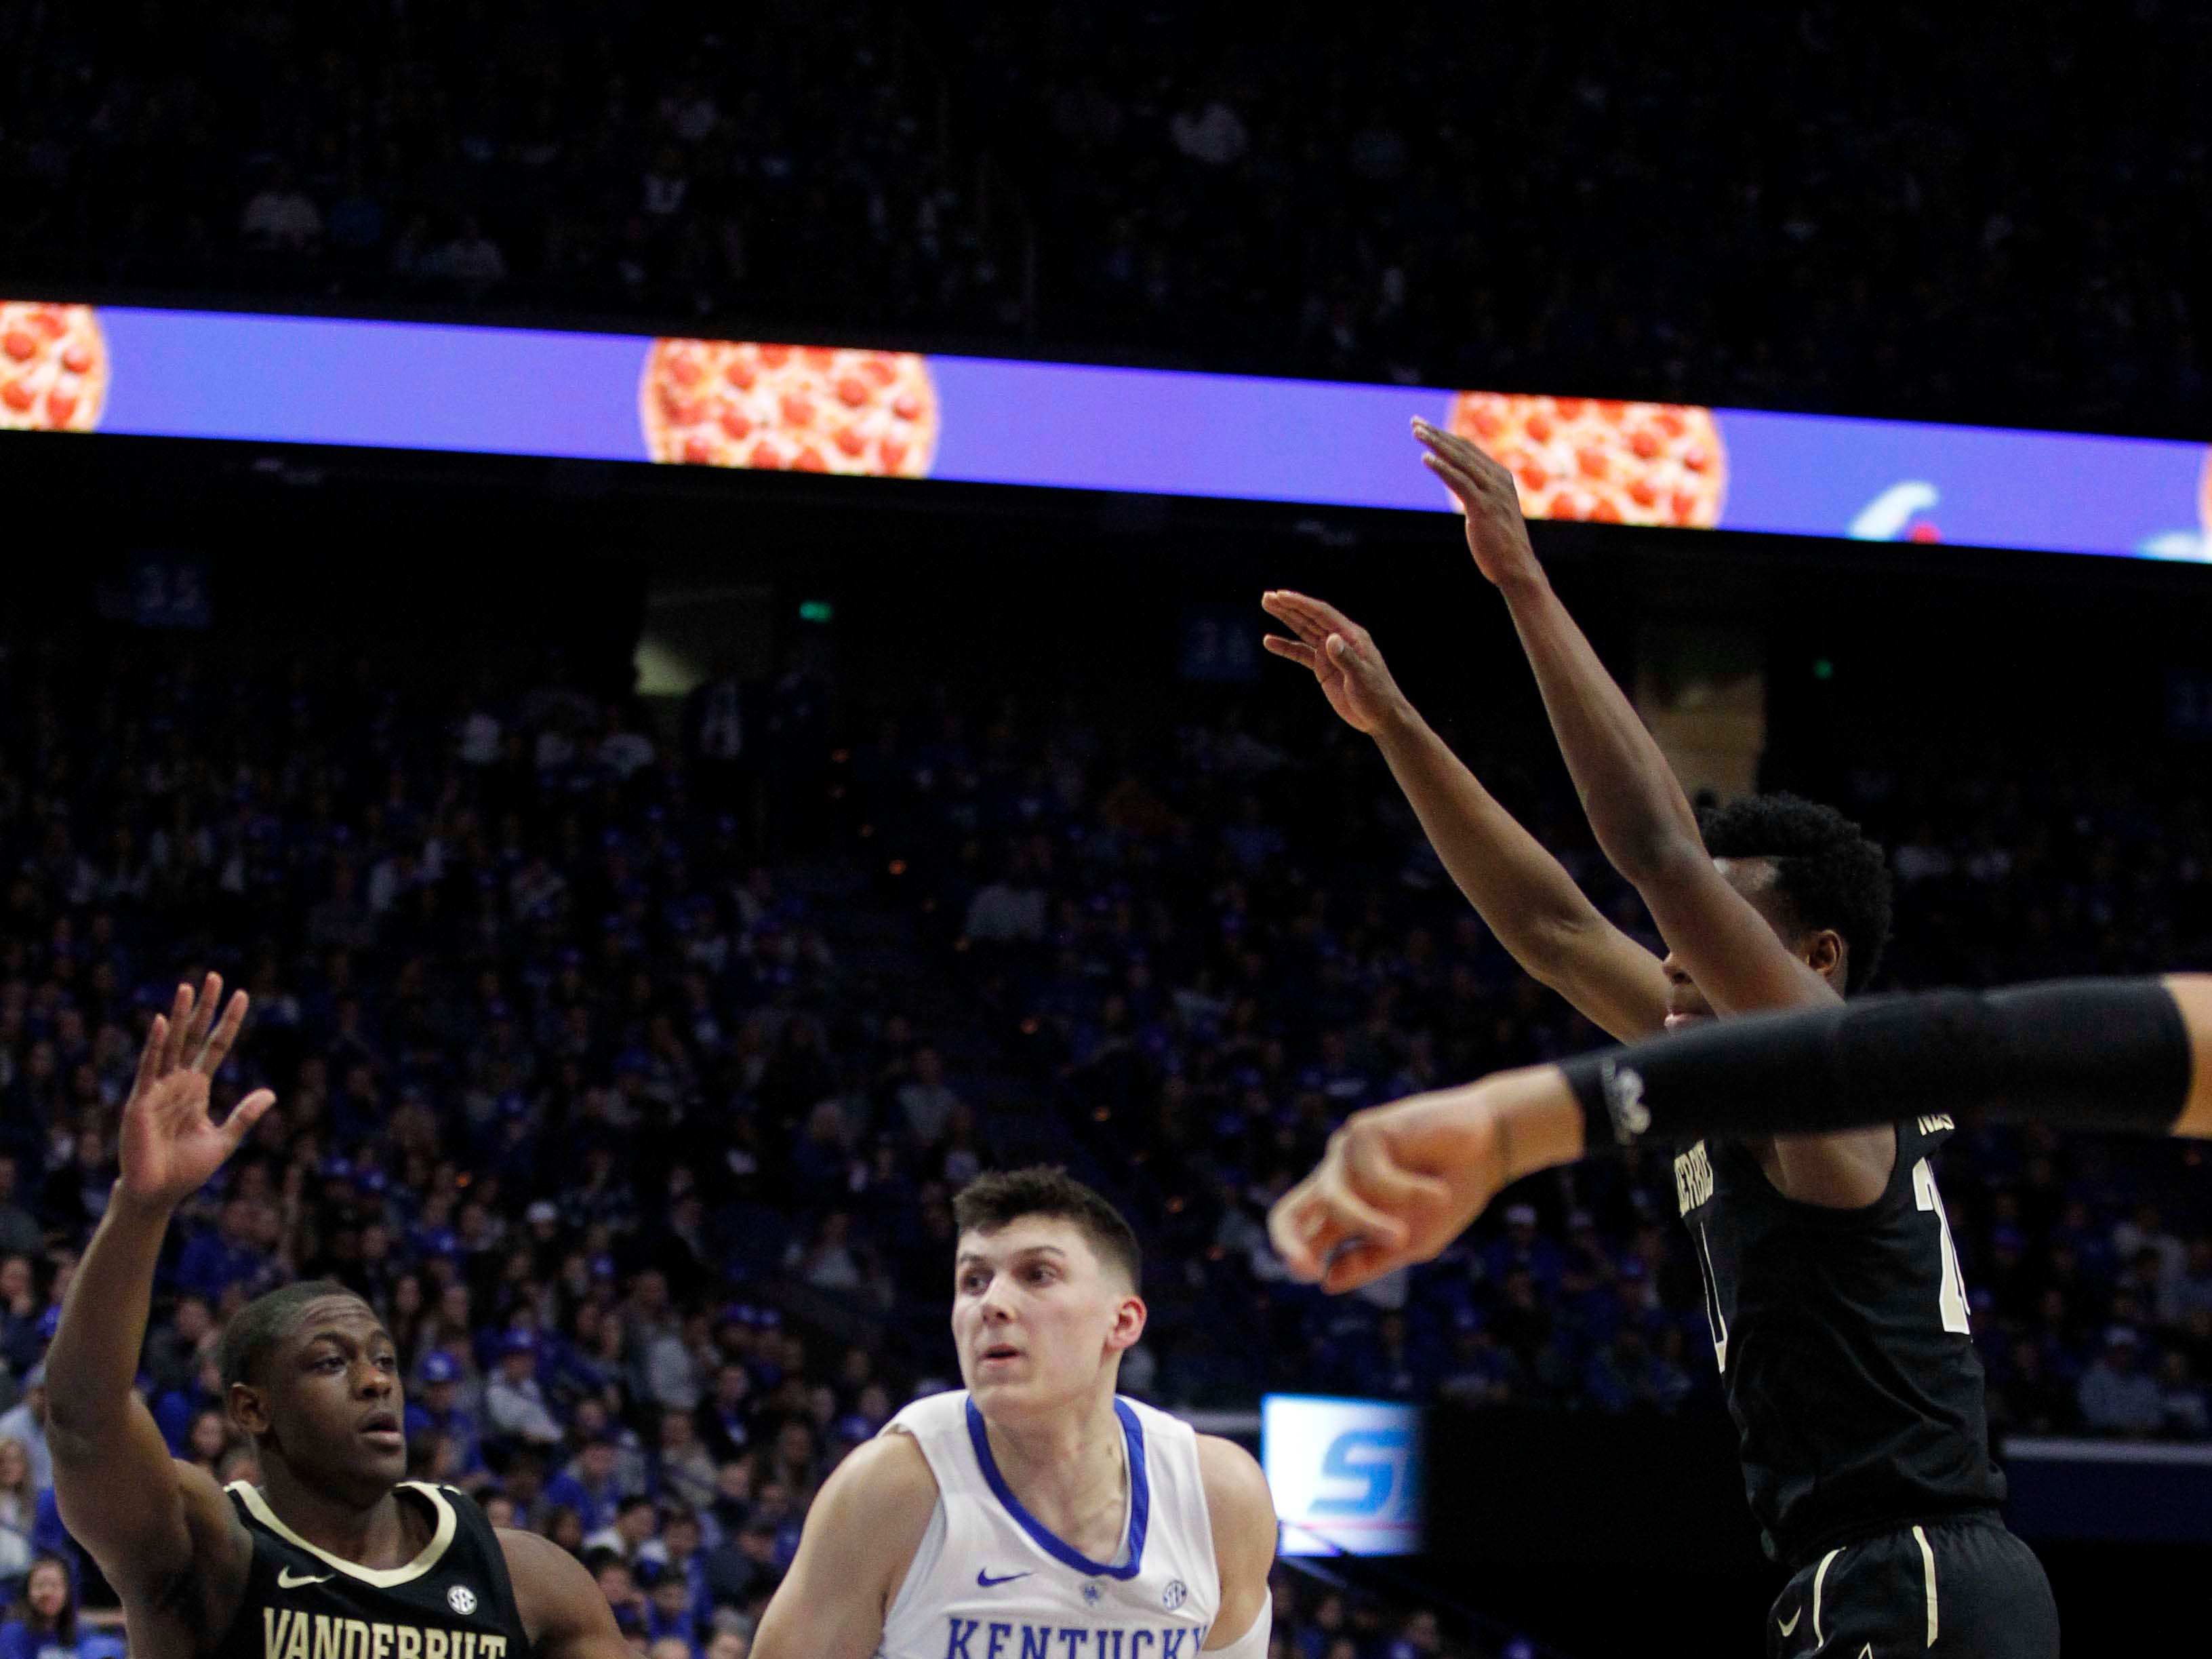 Kentucky Wildcats guard Tyler Herro (14) takes the ball to the basket against Vanderbilt Commodores guard Maxwell Evans (3) on Jan. 12, 2019.